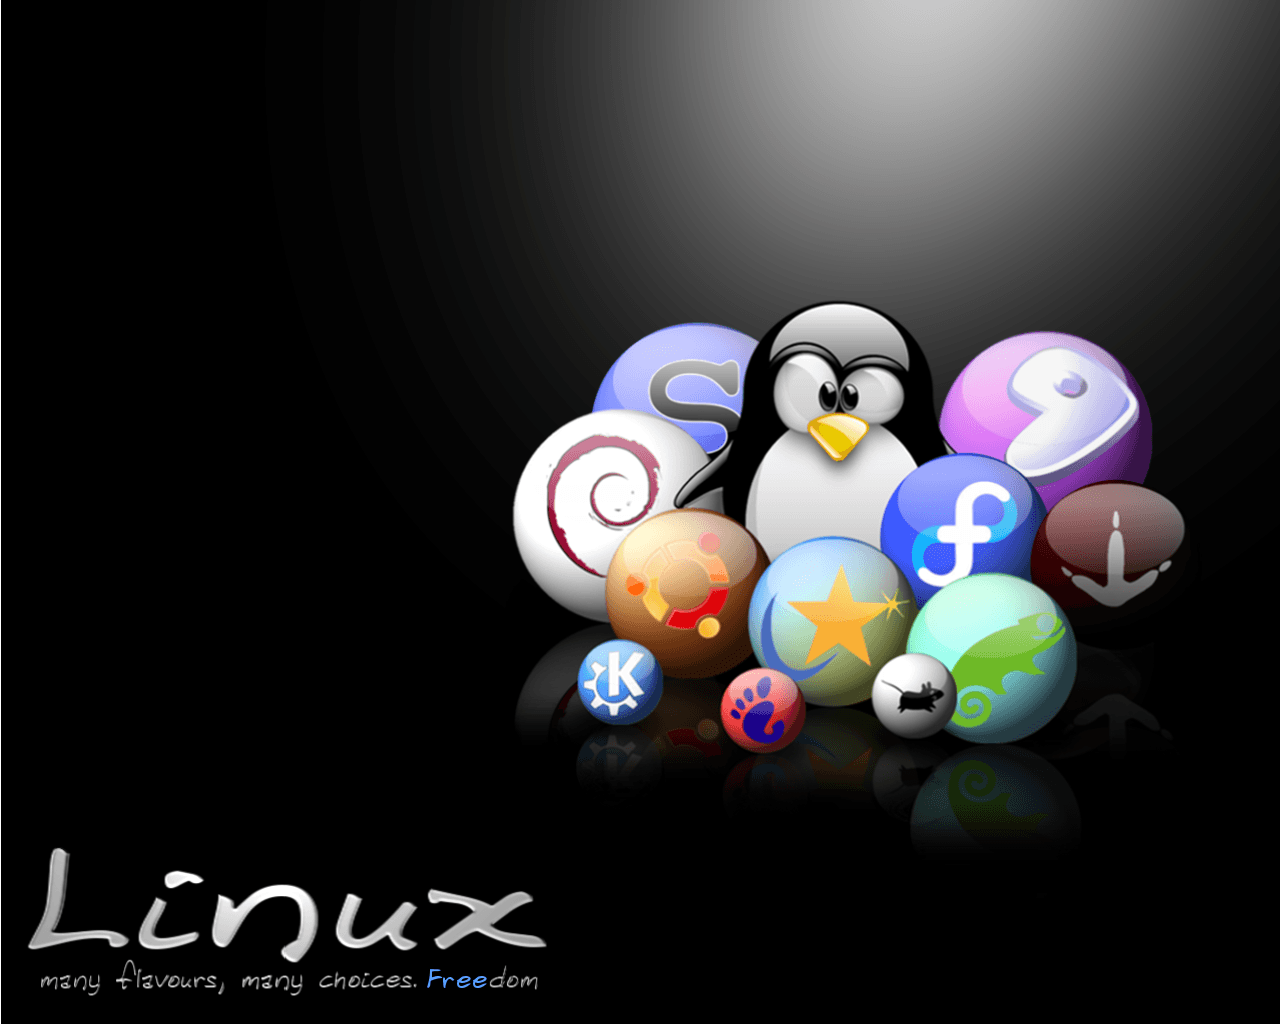 Create 3d Name Wallpaper Online Free Best Linux Wallpapers Wallpaper Cave